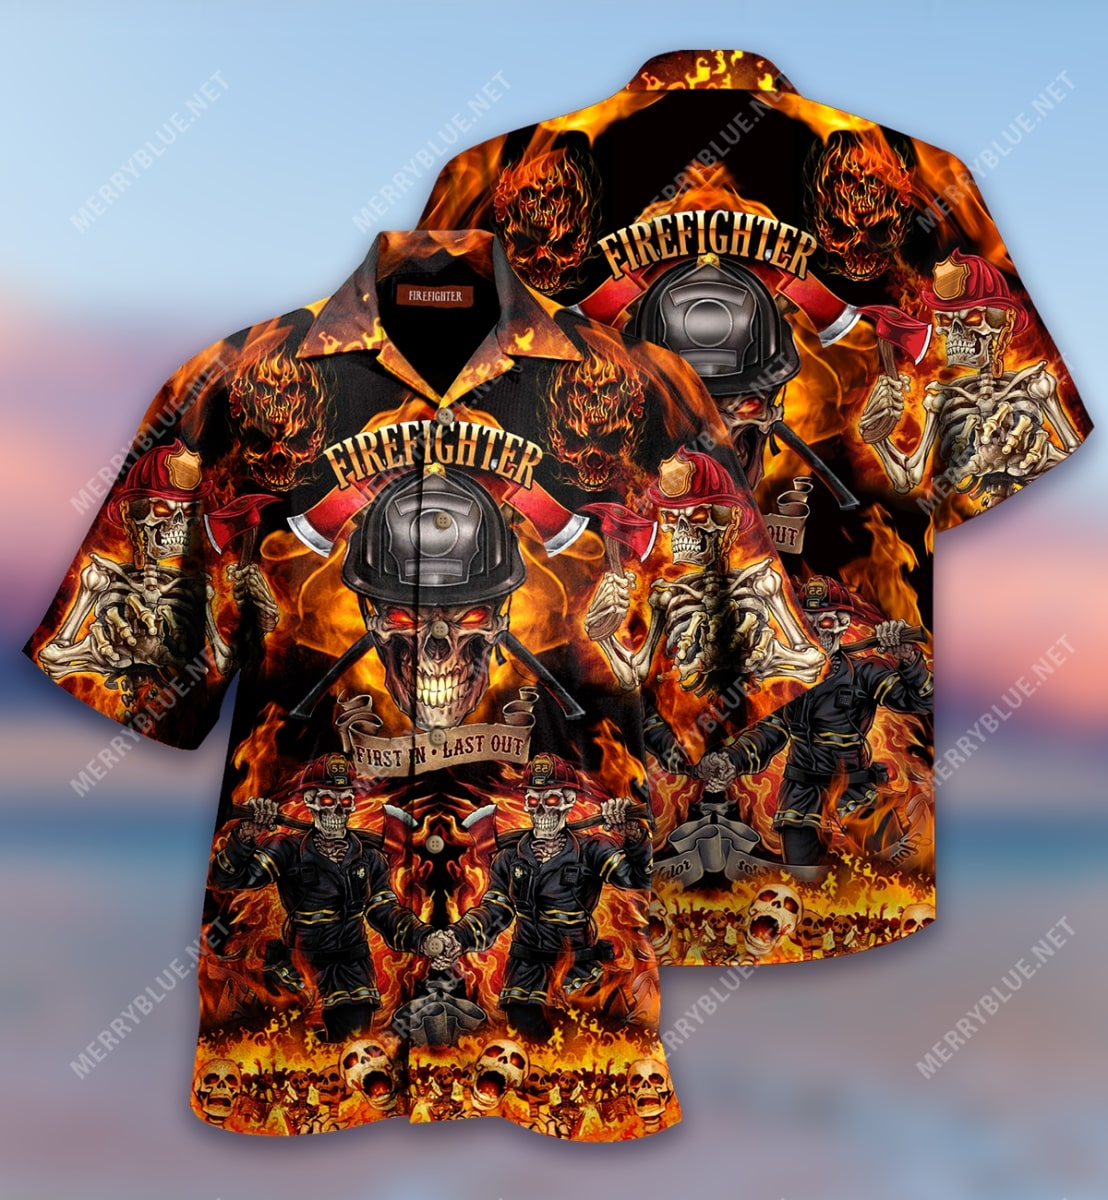 firefighter first in last out all over print hawaiian shirt 3